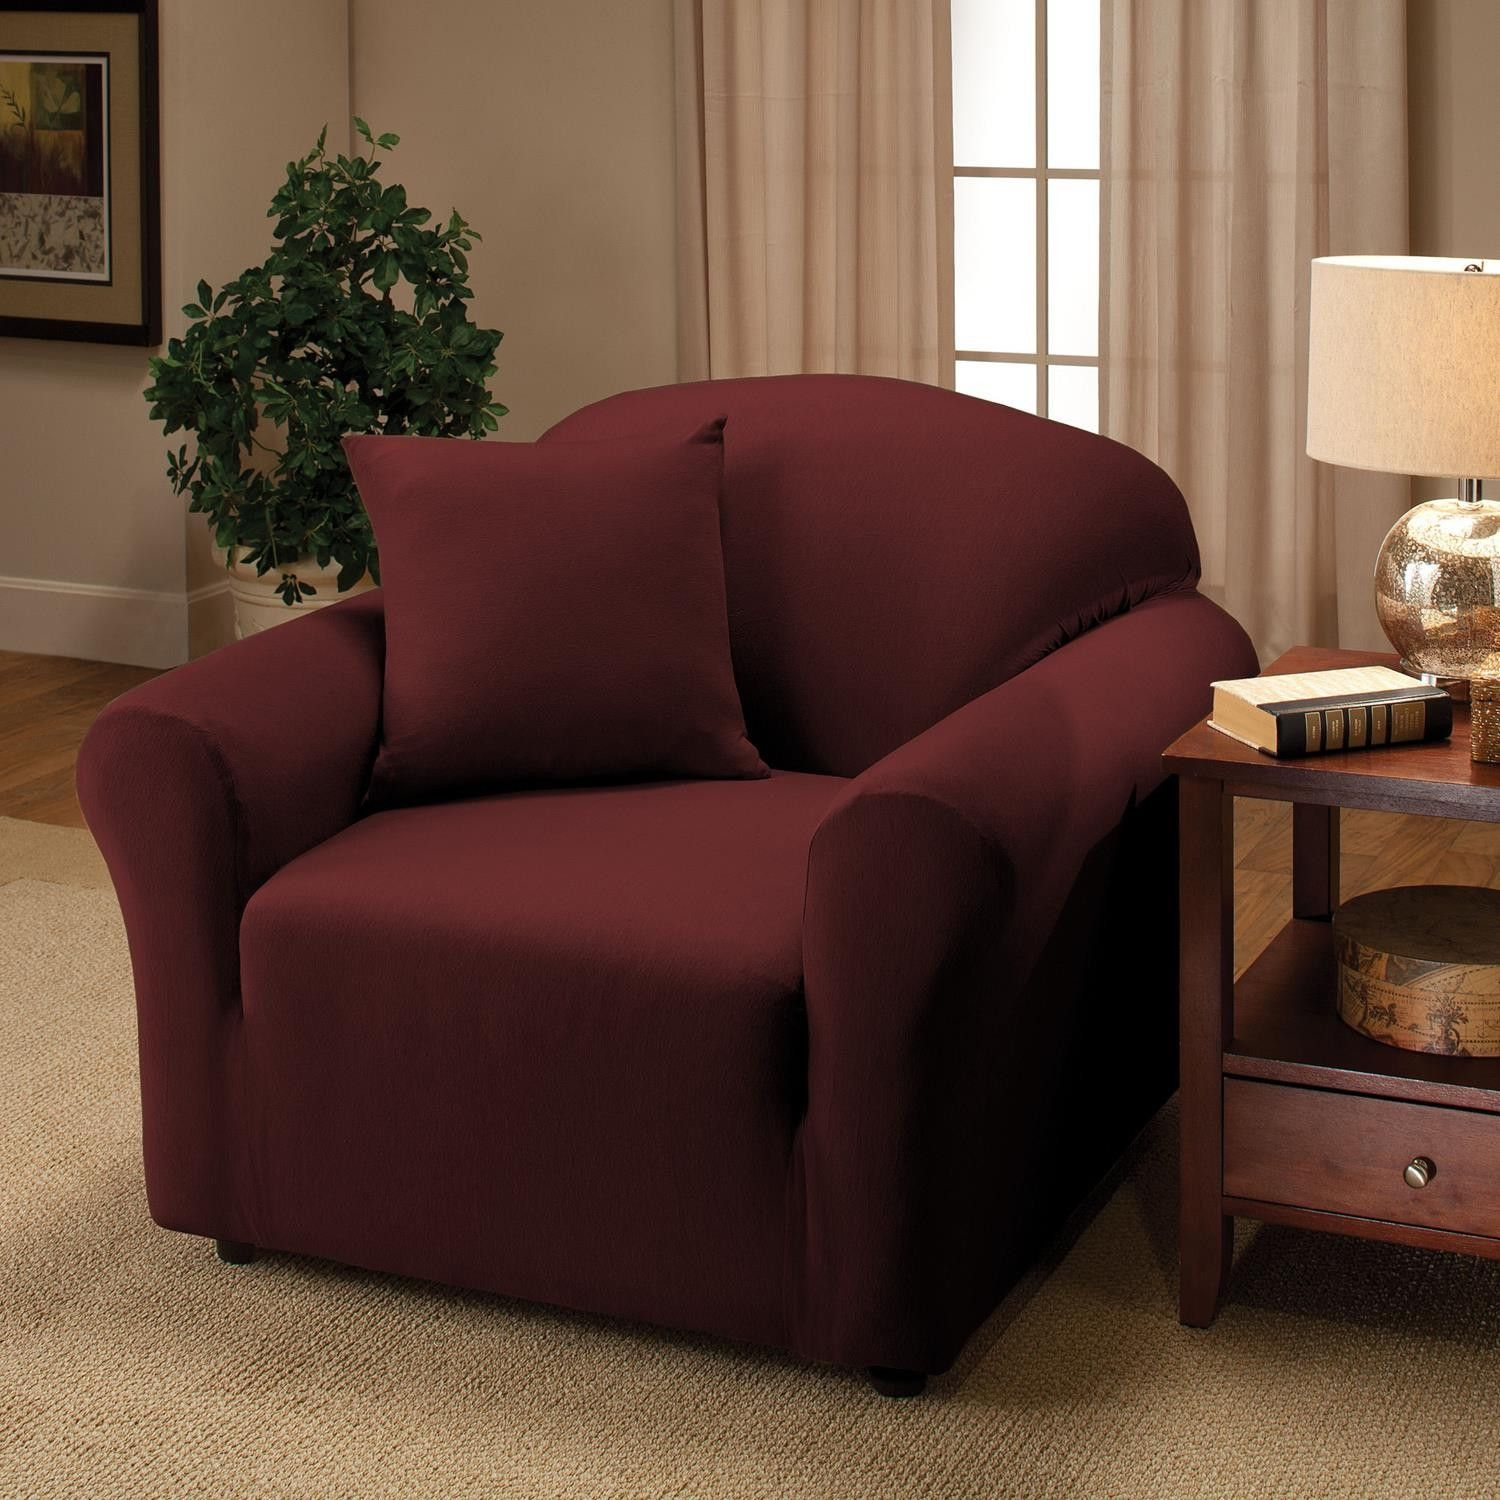 Black Jersey Loveseat Stretch Slipcover, Sofa, Chair, Recliner, Couch Cover  Love Seat